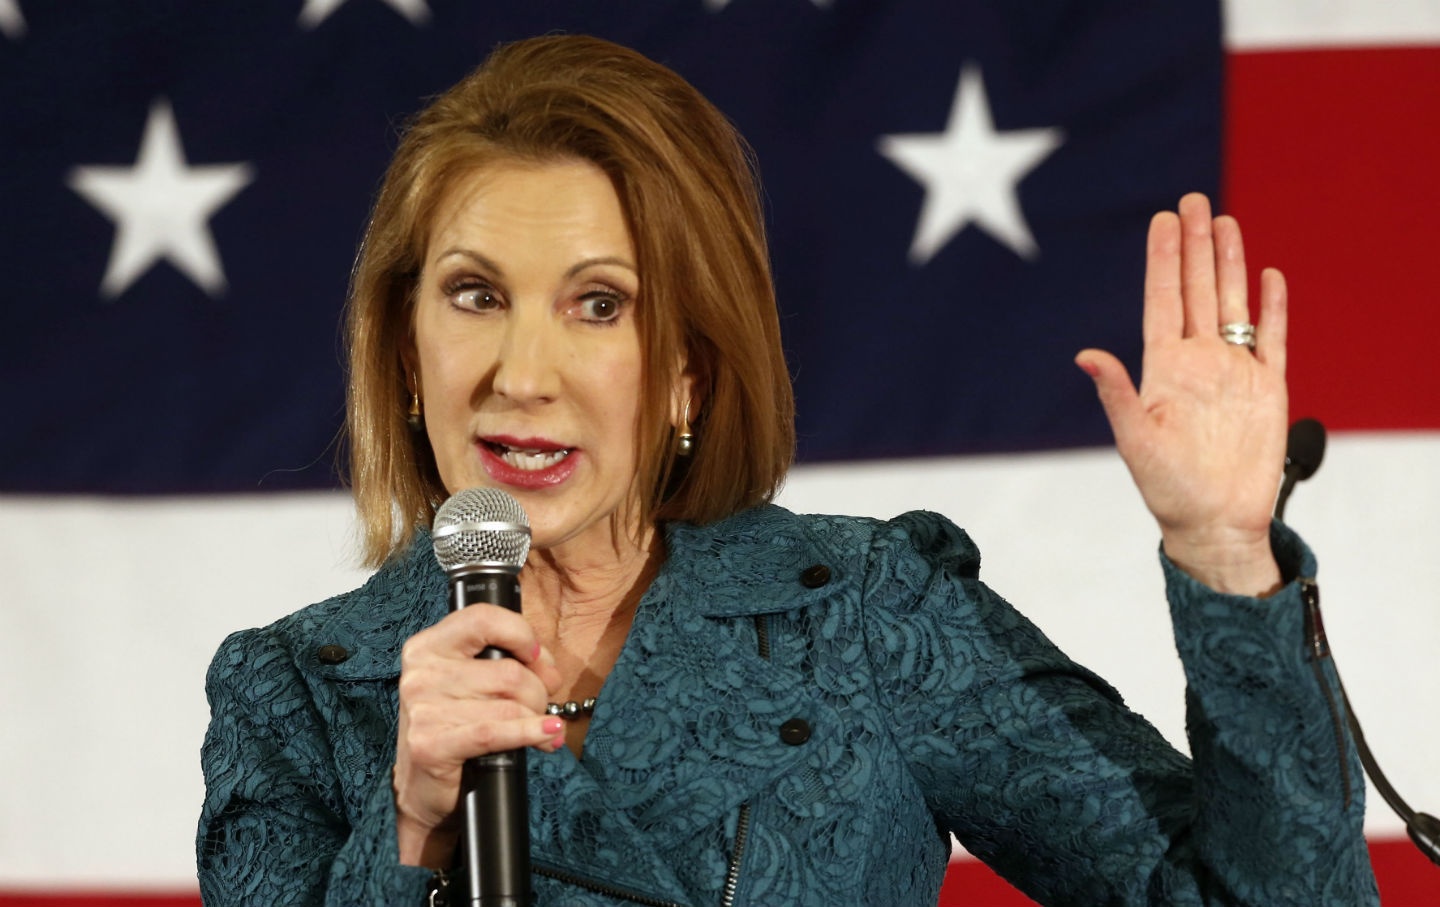 Fact Check: Marijuana Did Not Kill Carly Fiorina's Daughter